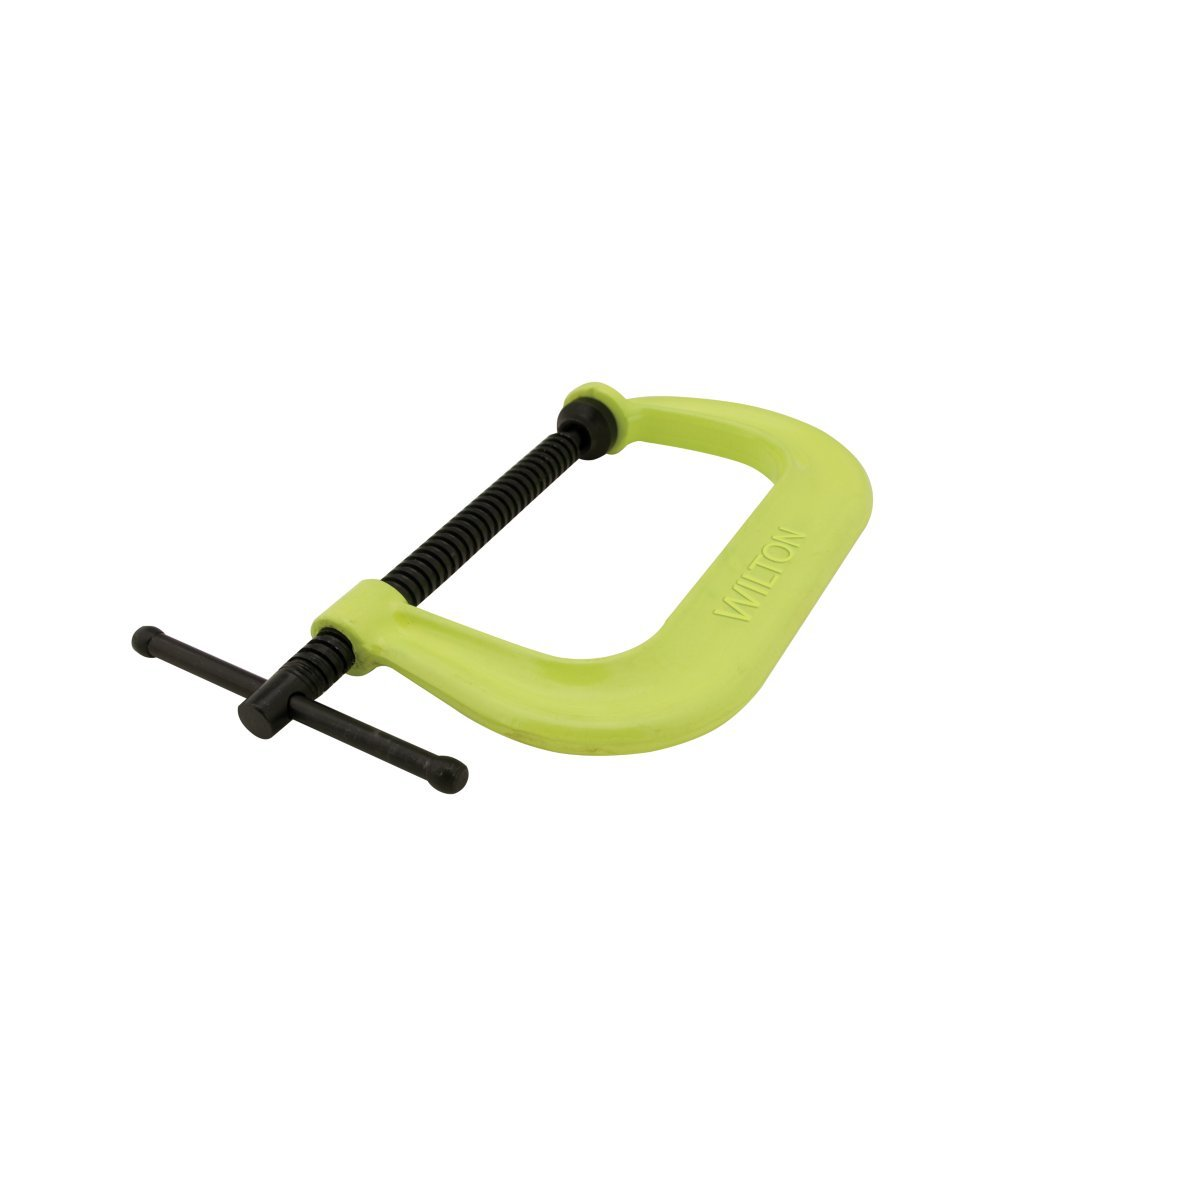 Wilton 14303 406Sf, 400-Sf Series C-Clamp, 0-Inch-6-1/16-Inch Jaw Opening, 4-1/8-Inch Throat Depth by Wilton